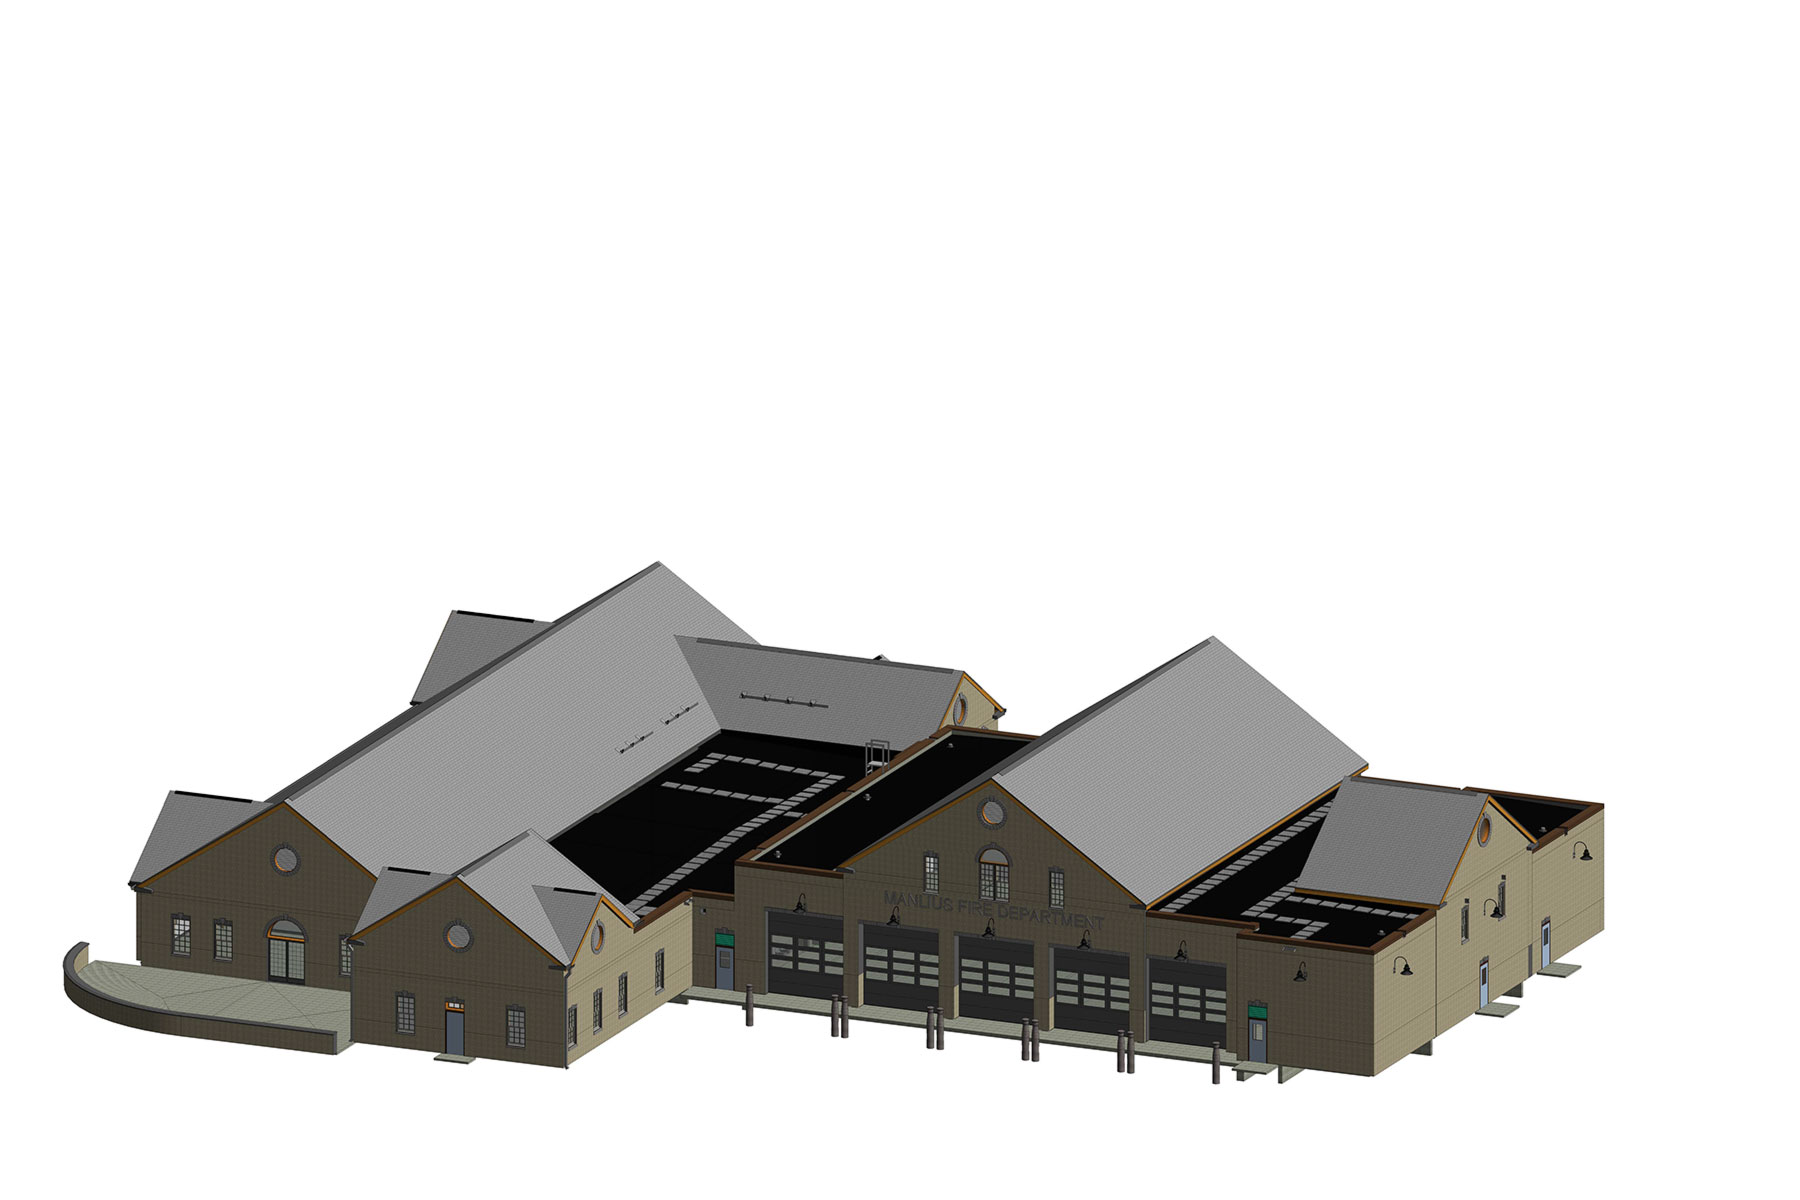 Rendering of full building